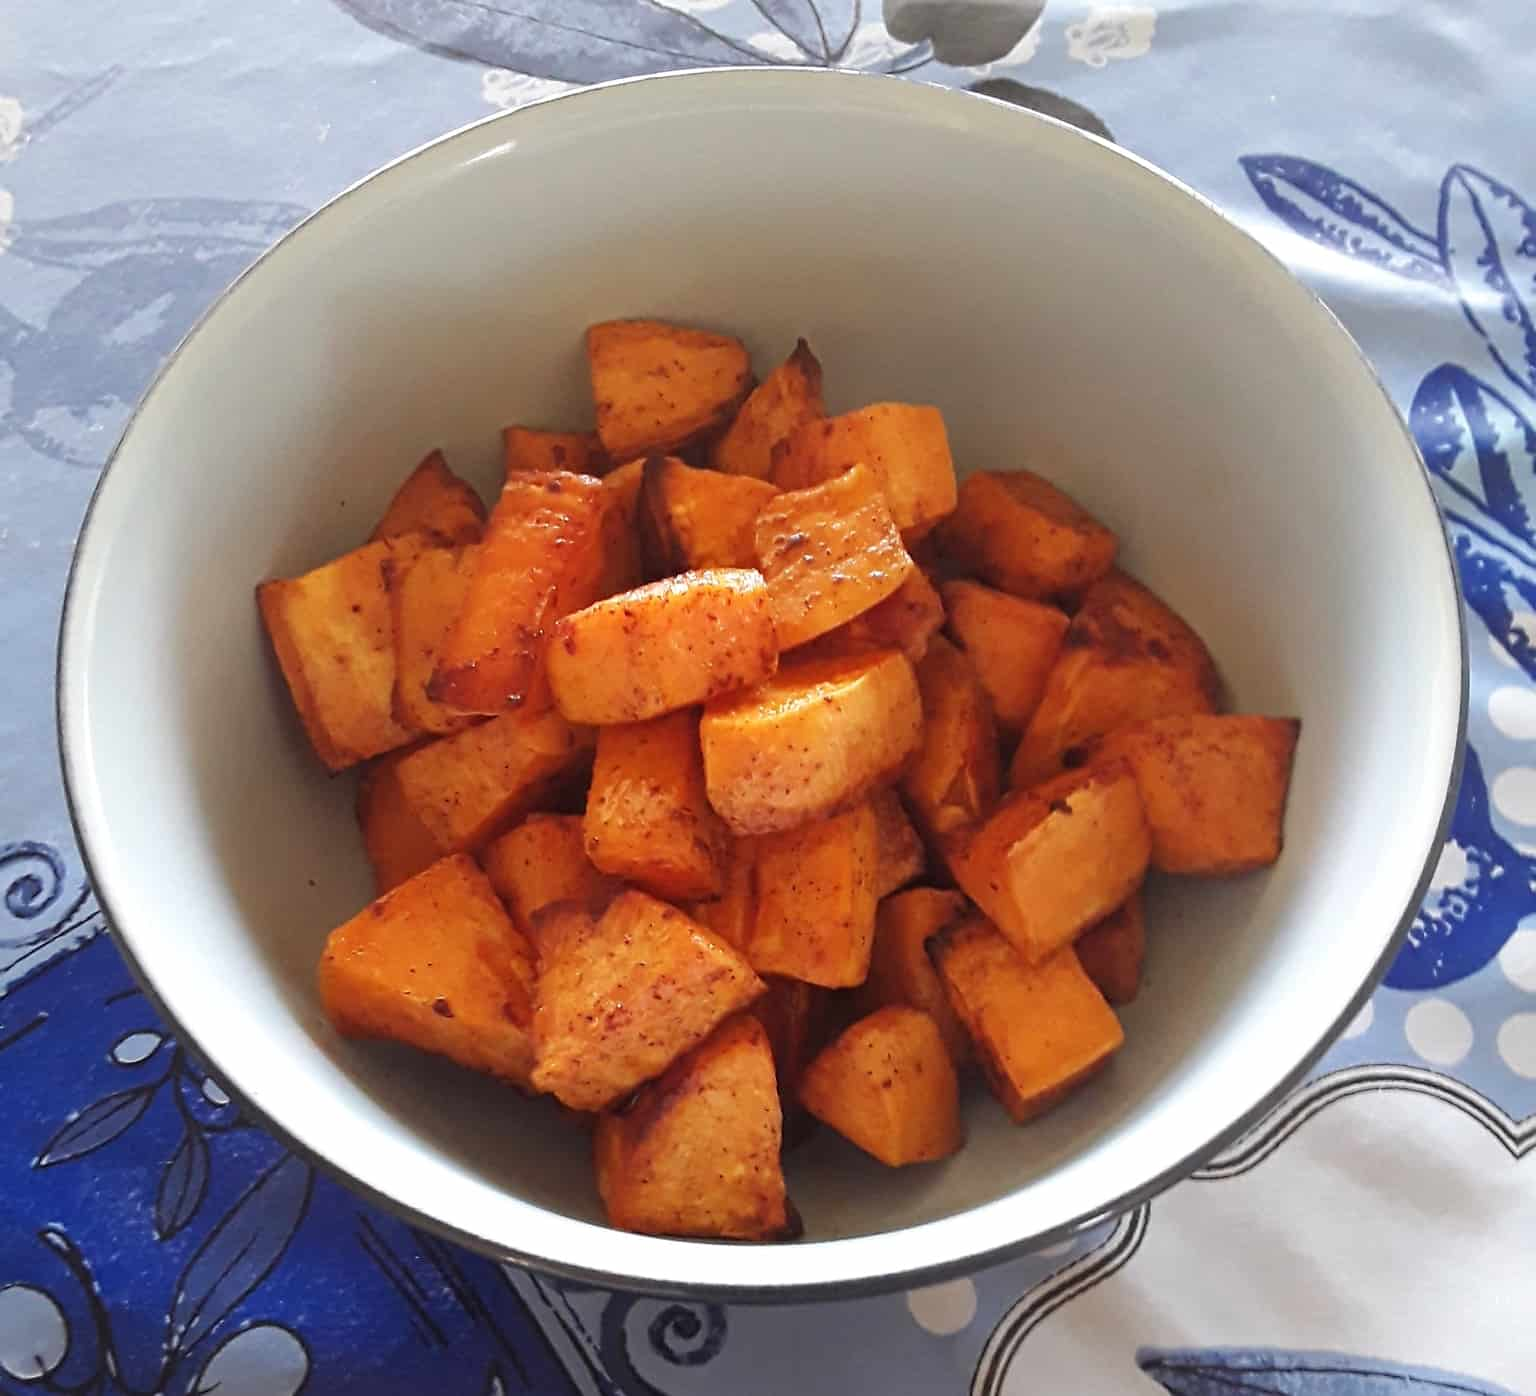 Bowl of spicy roasted sweet potatoes